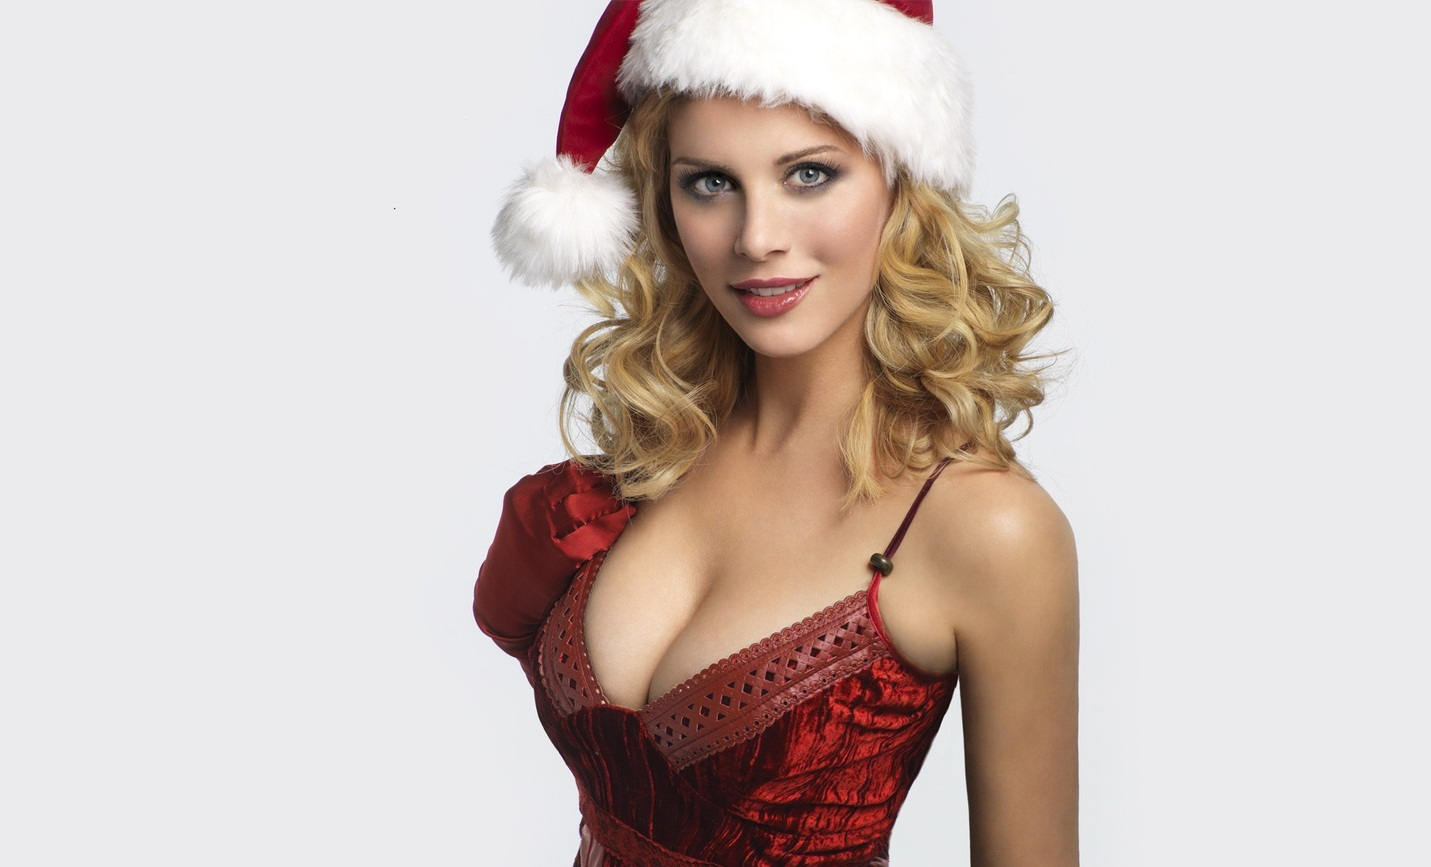 Topless christmas babe wallpaper naked scenes